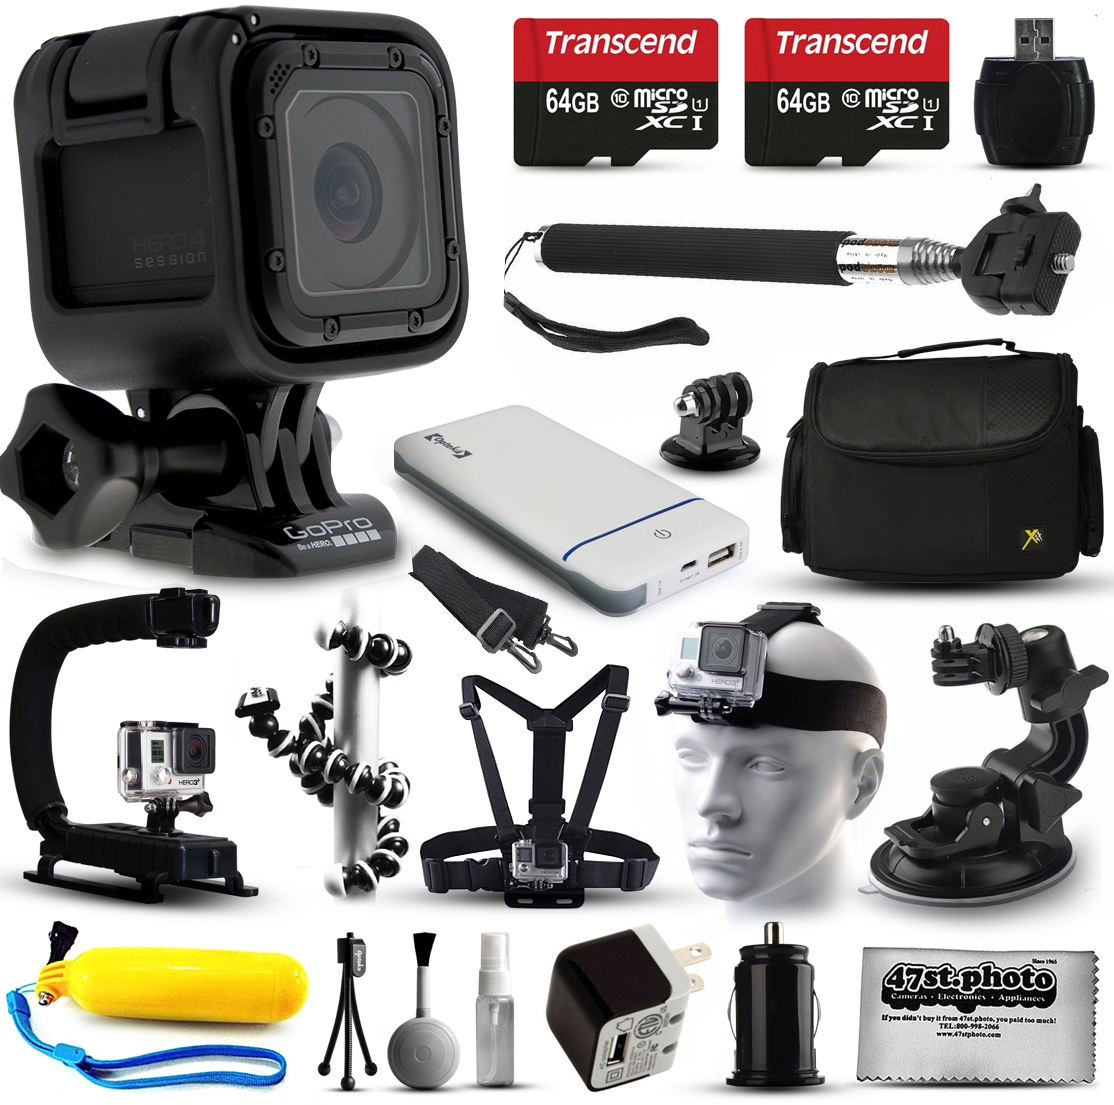 GoPro HERO4 Session HD Action Camera (CHDHS-101) + Ultimate 20 Piece Accessories Package with 128GB Memory + Travel Case + USB Portable Charger + Head/Chest Strap + Opteka X-Grip + Car Mount & More! GOPROCHDHS101K13